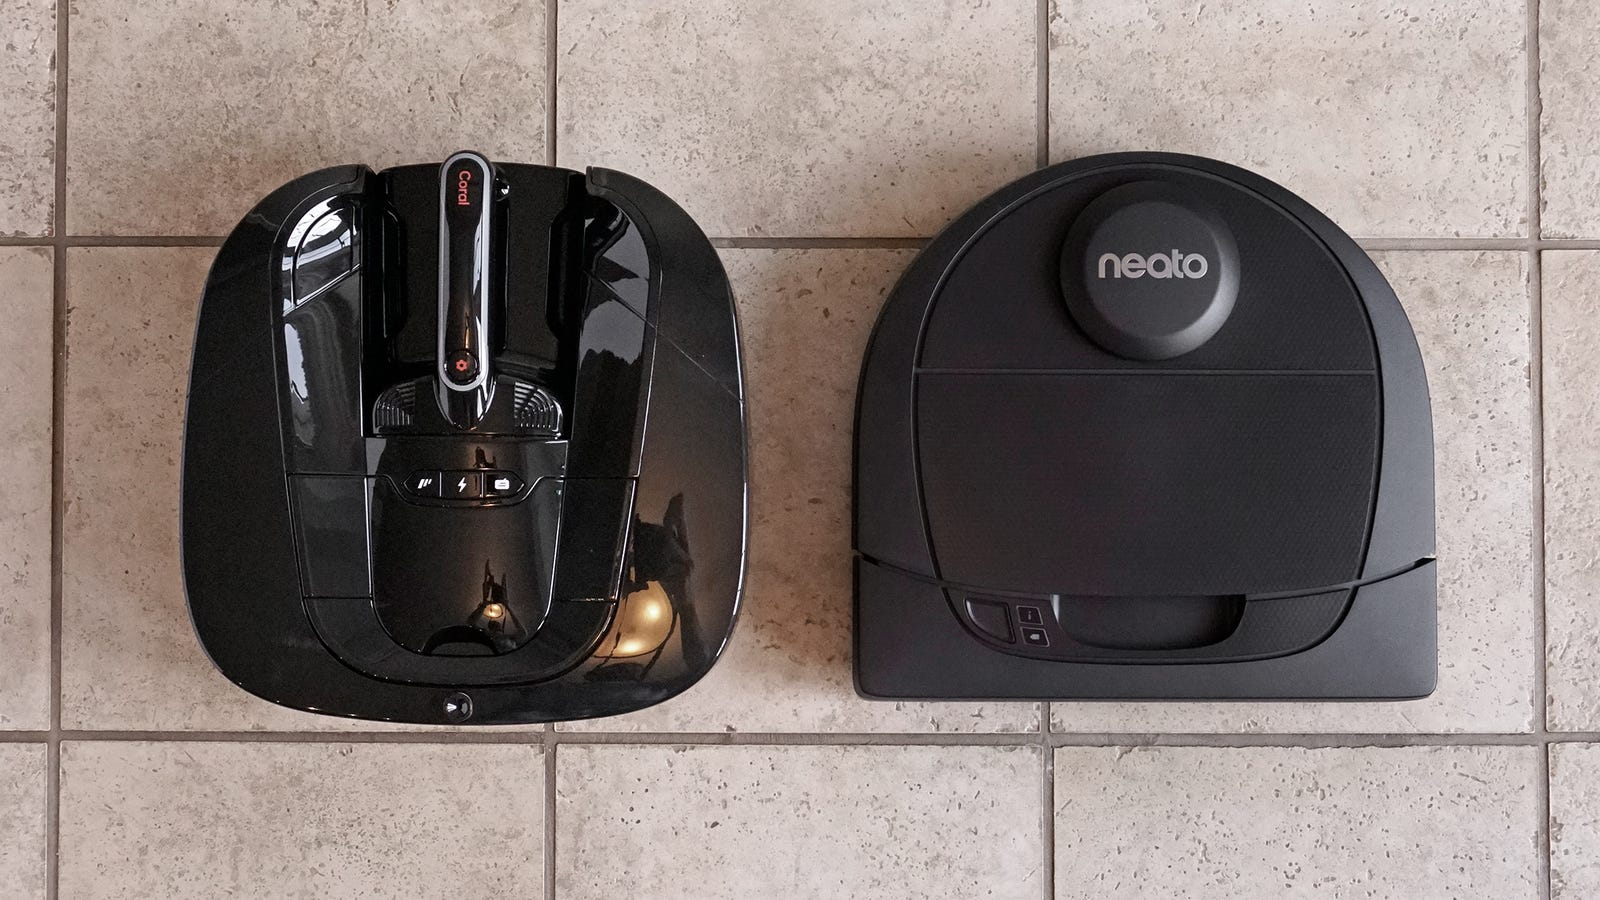 The Coral One (left) has roughly the same footprint as the Neato D4 (right).